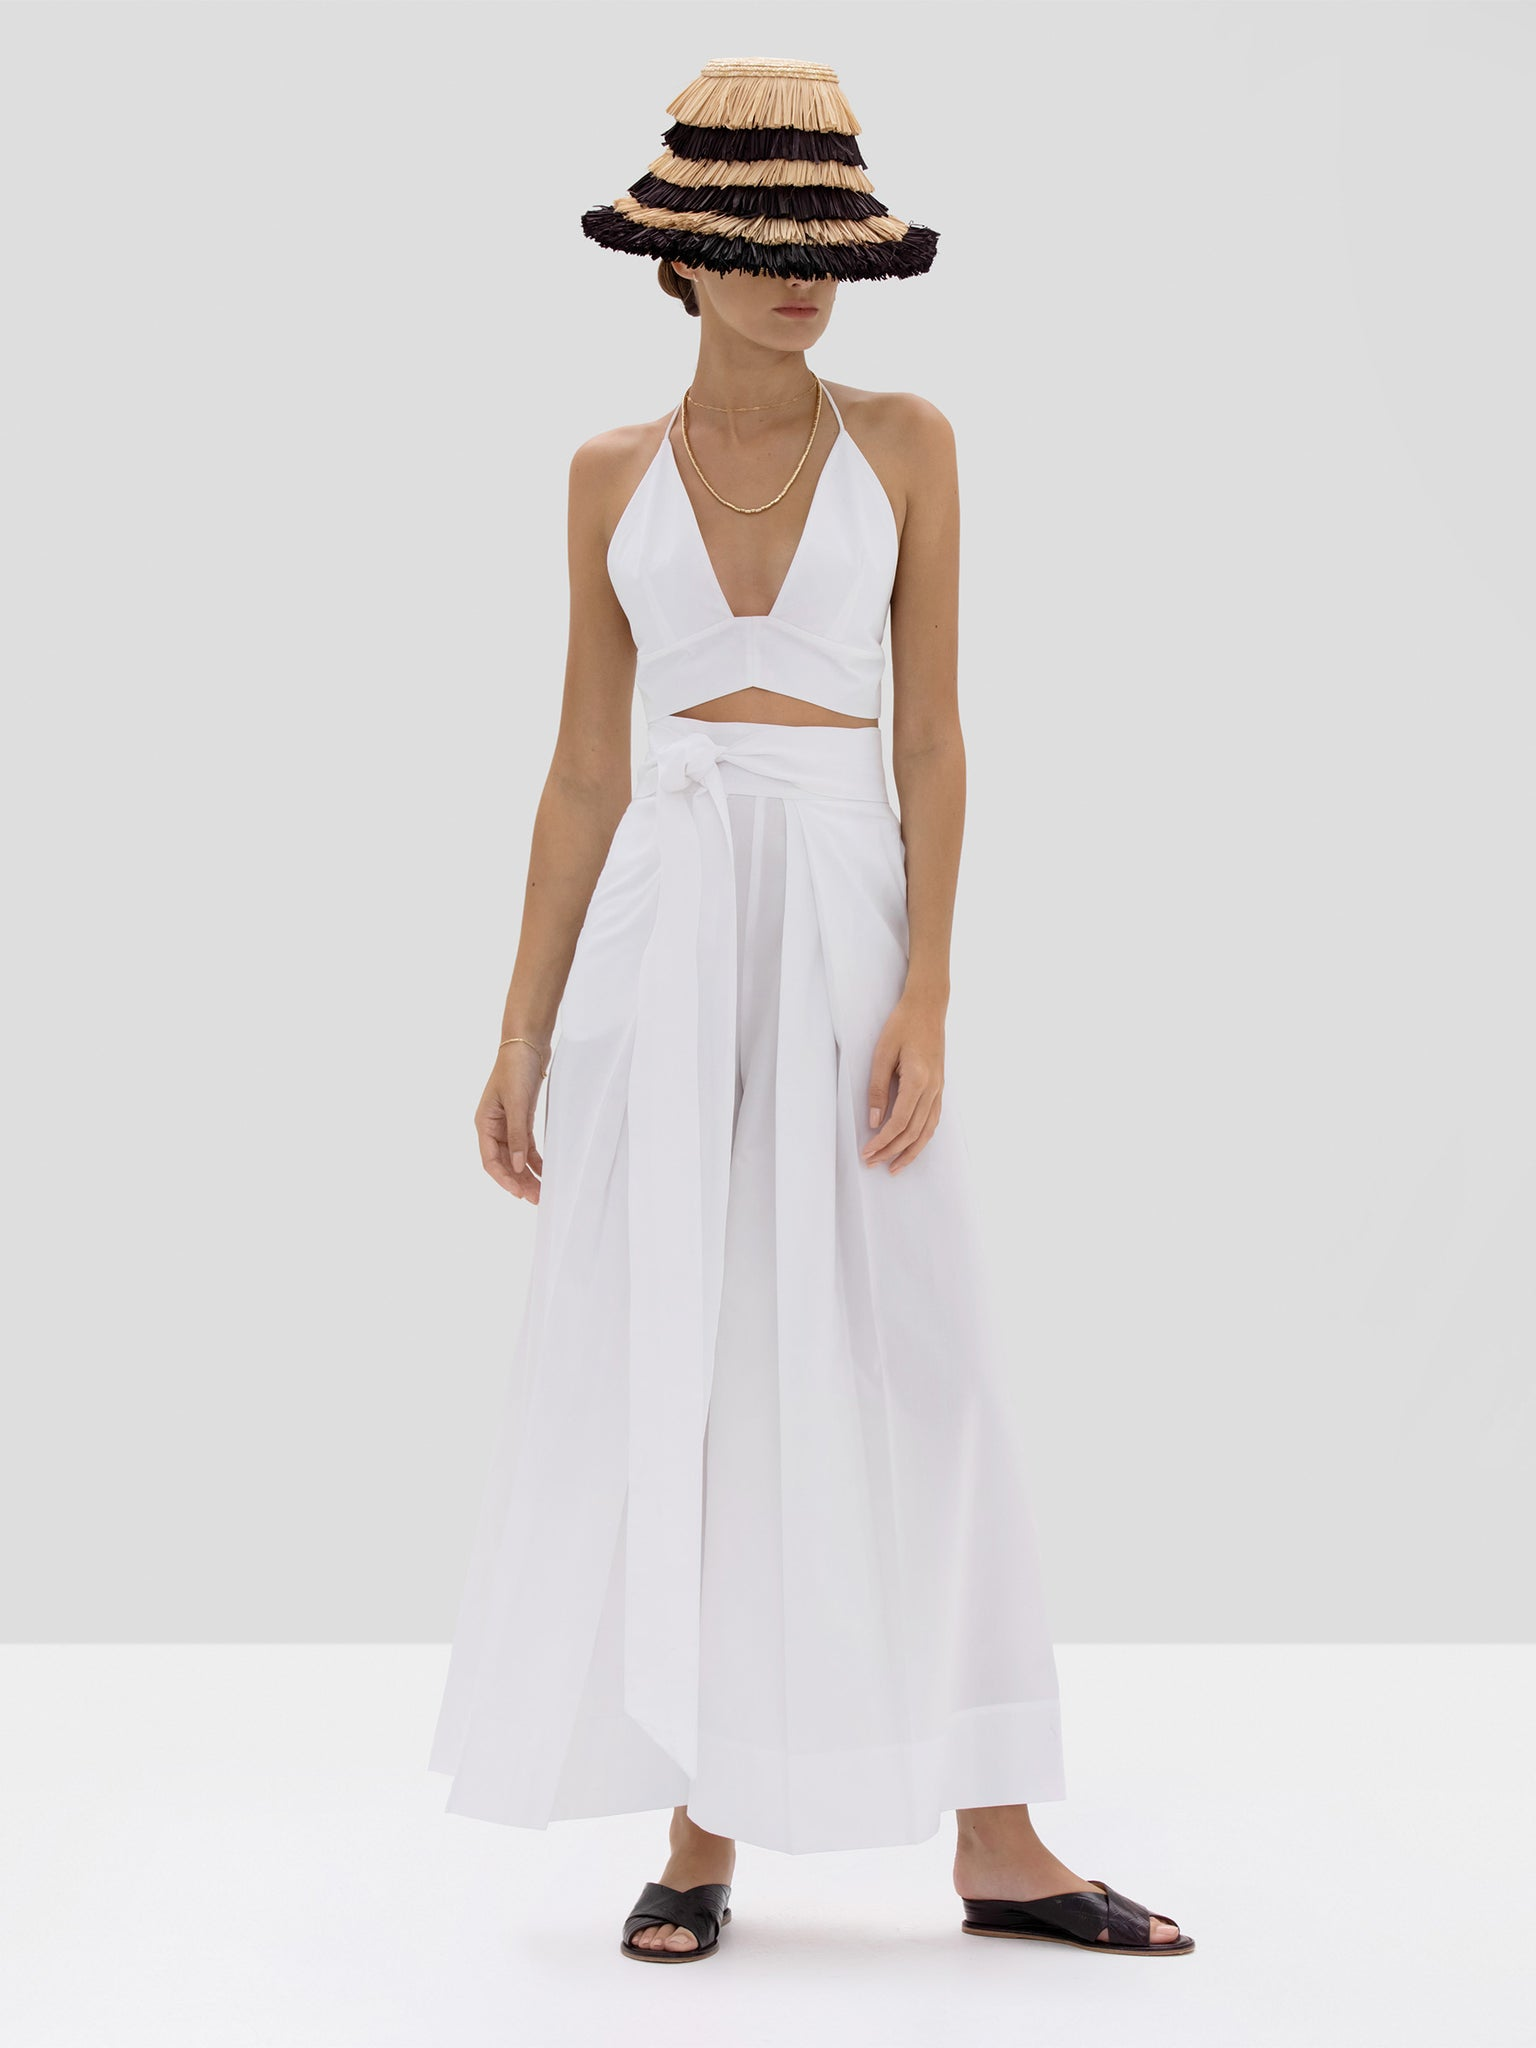 Alexis Linos Top and Bandol Pant in White from Spring Summer 2020 Collection